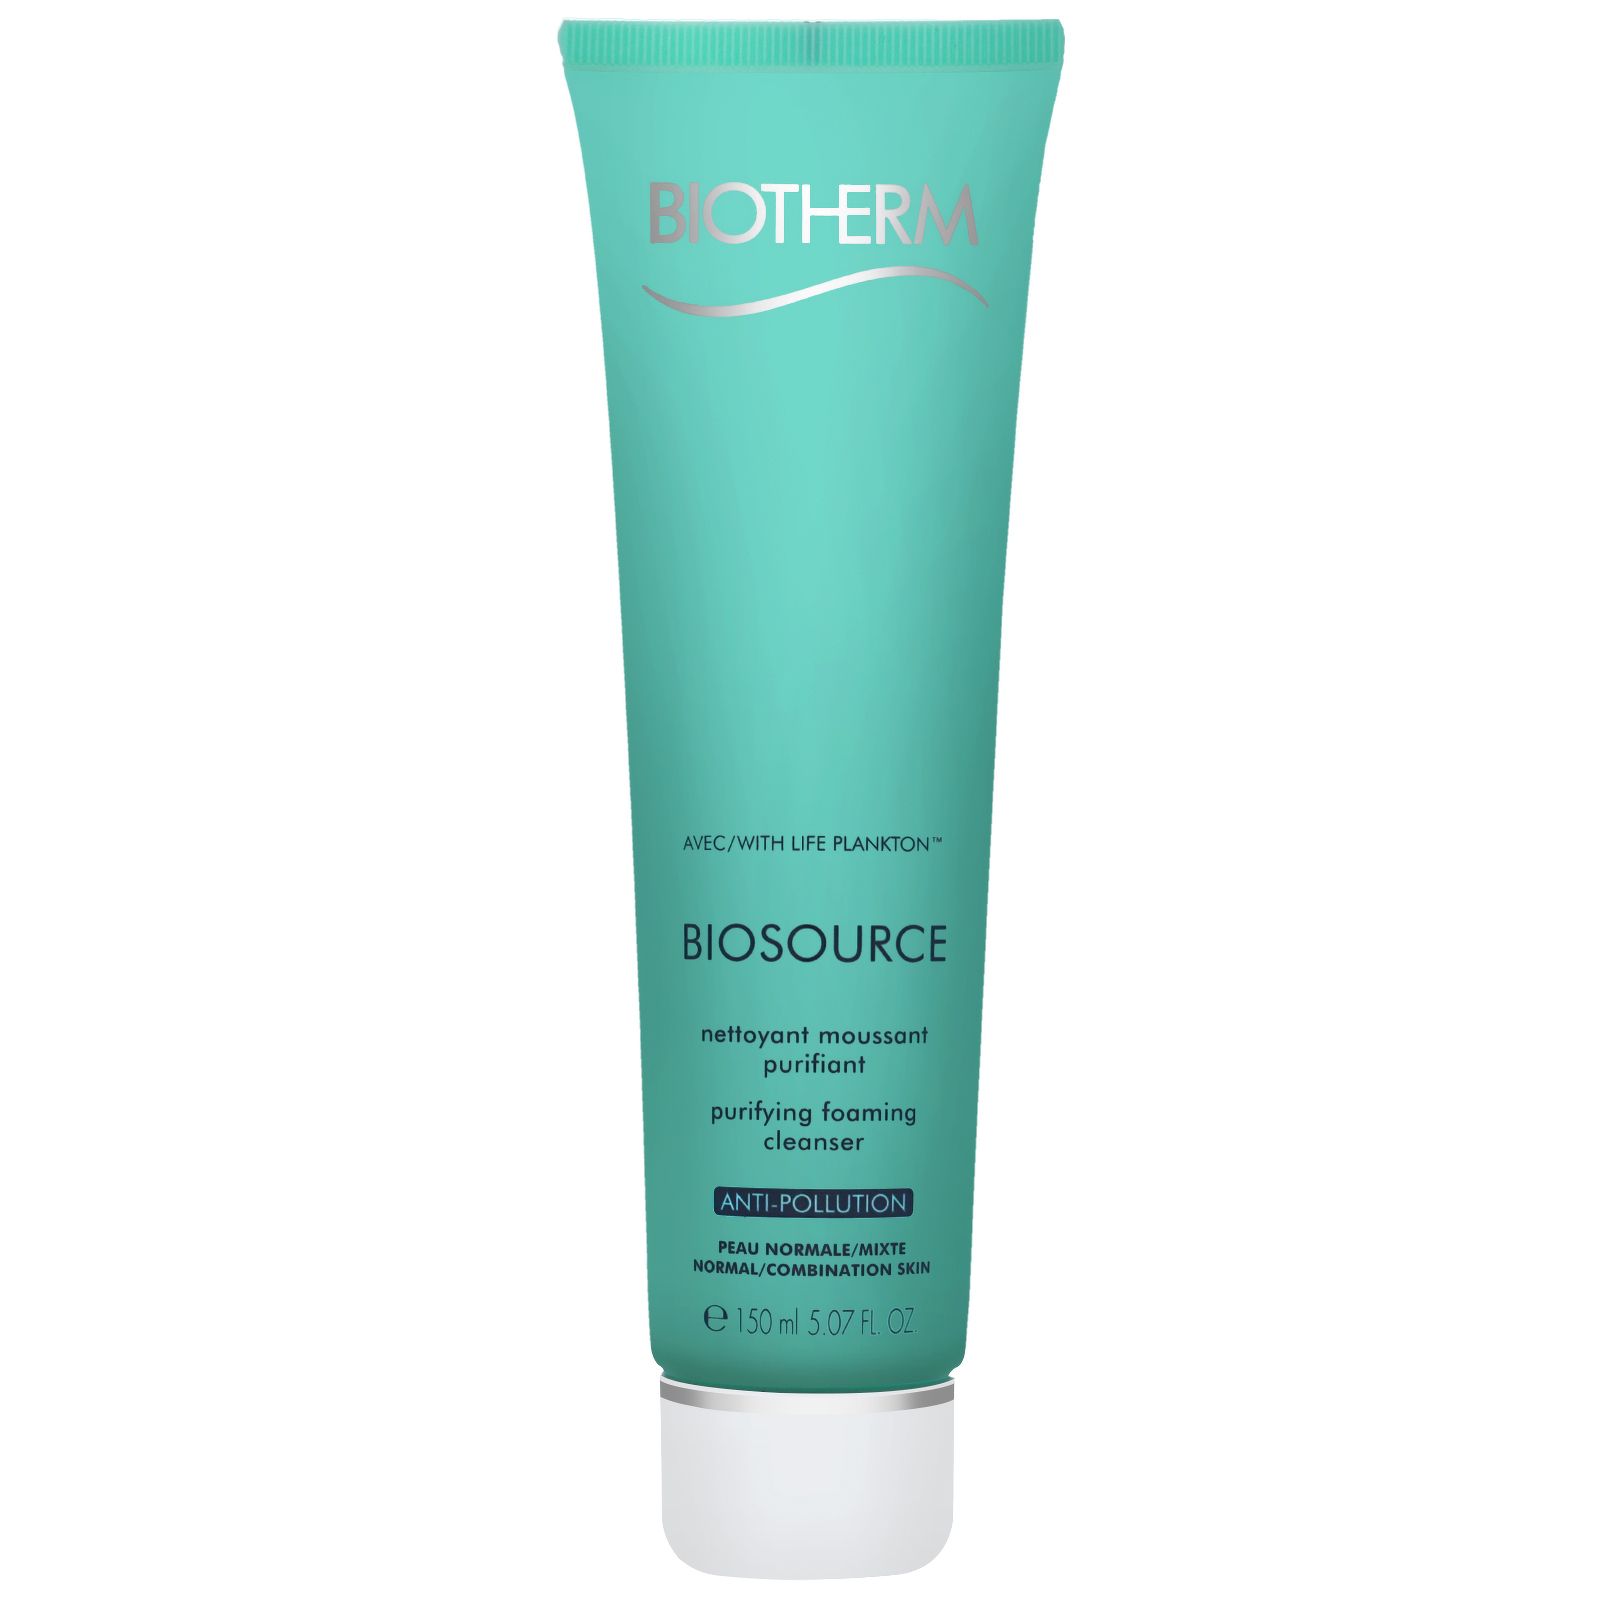 Biotherm Biosource Fresh Foam Hydra Toning Cleanser For Normal/Combination Skin 150ml